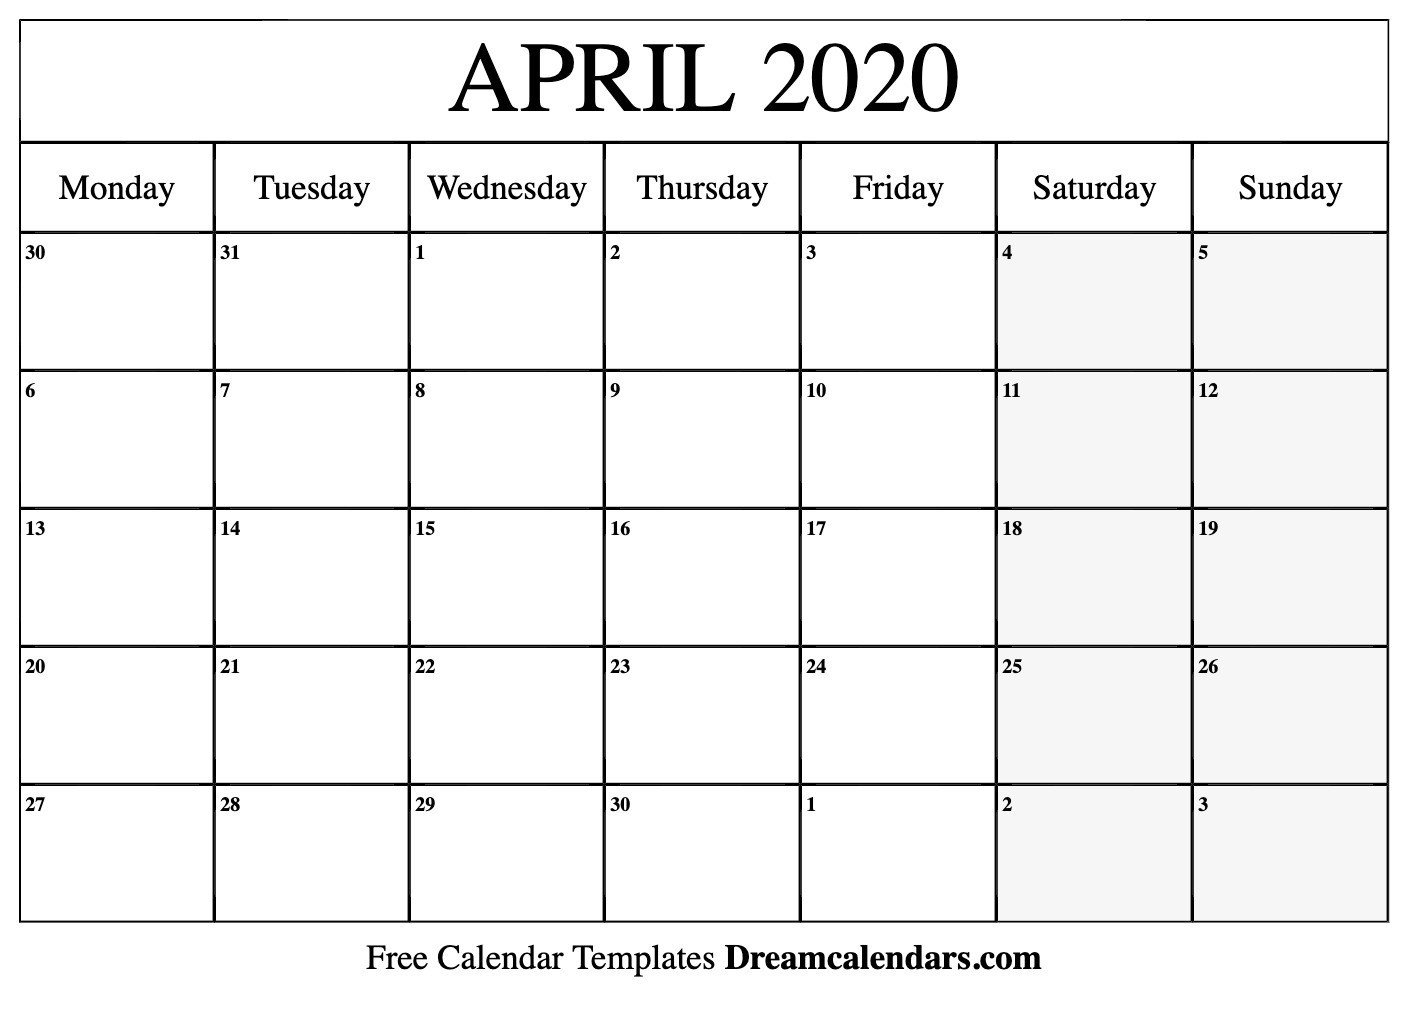 Printable April 2020 Calendar Templates - Helena Orstem - Medium  Calendar Templates 2020 Printable